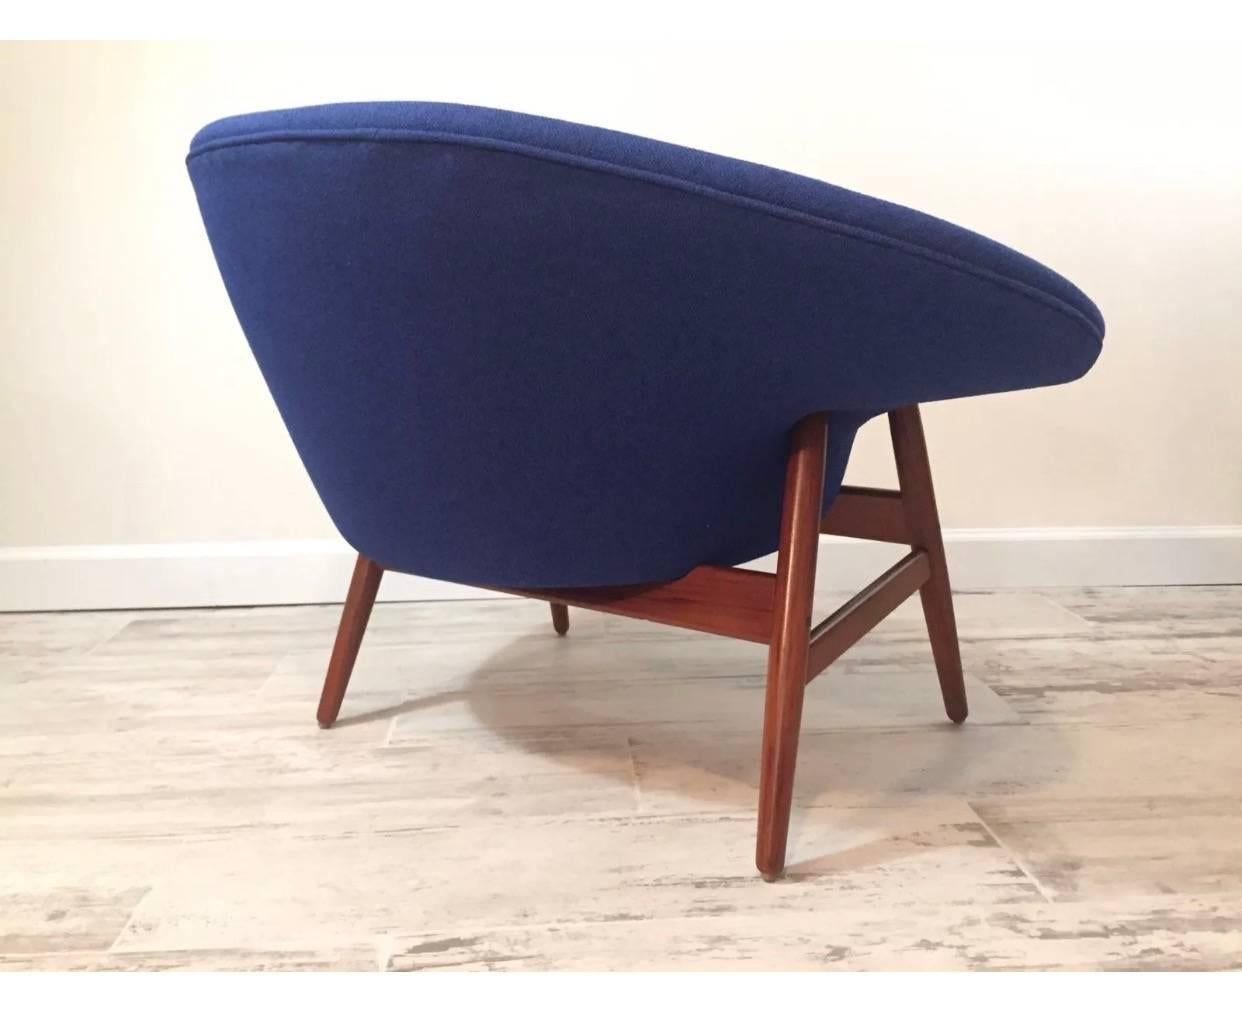 Mid-20th Century Hans Olsen Fried Egg Chair for Bramin Danish Lounge For Sale  sc 1 st  1stDibs & Hans Olsen Fried Egg Chair for Bramin Danish Lounge at 1stdibs